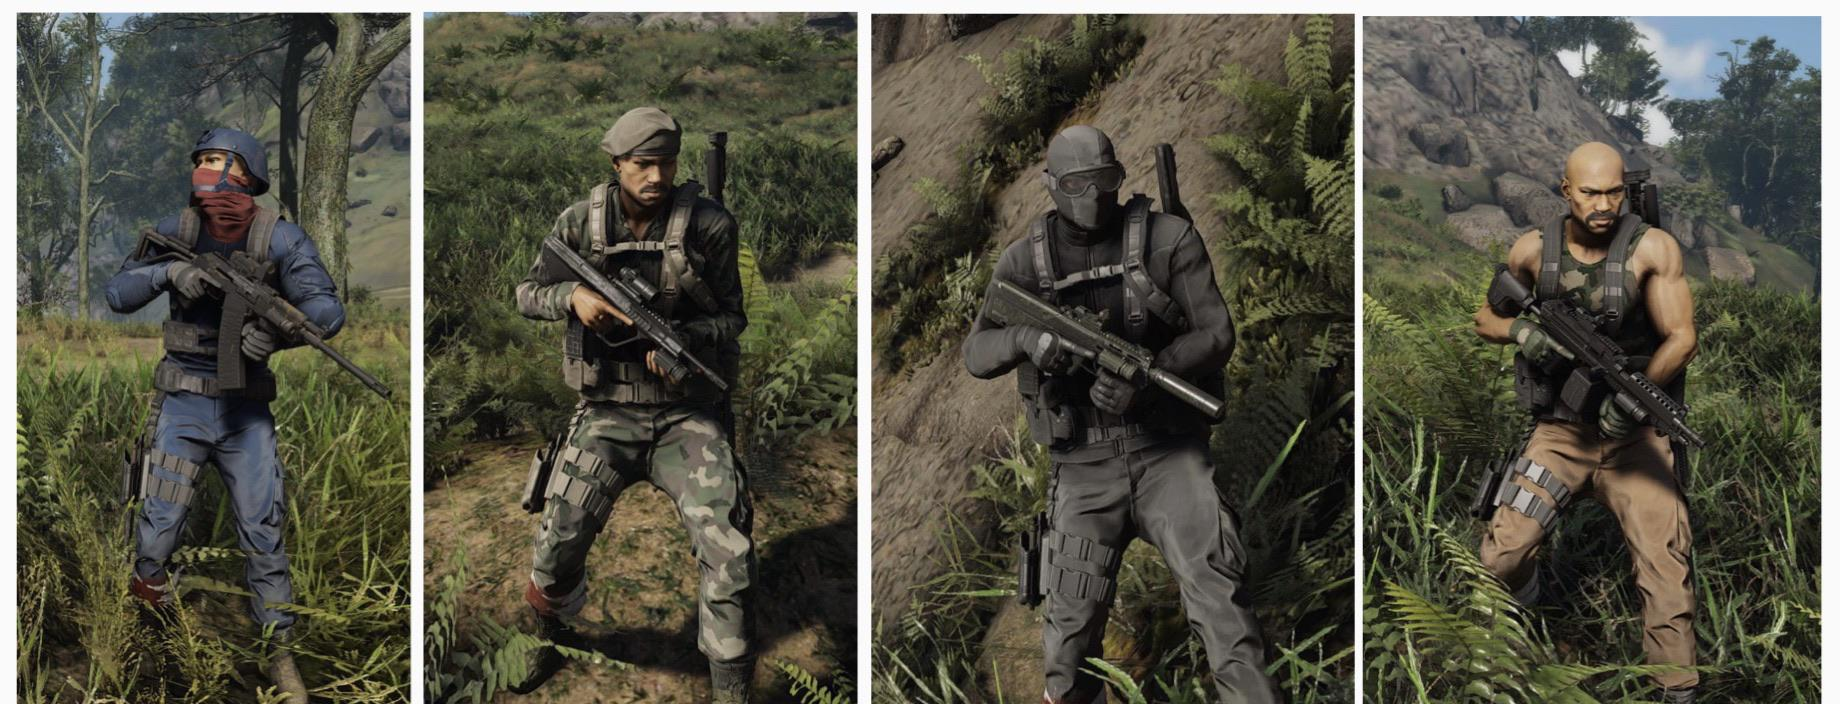 Ghost Recon Breakpoint cosplayer shows we really need a GI Joe expansion